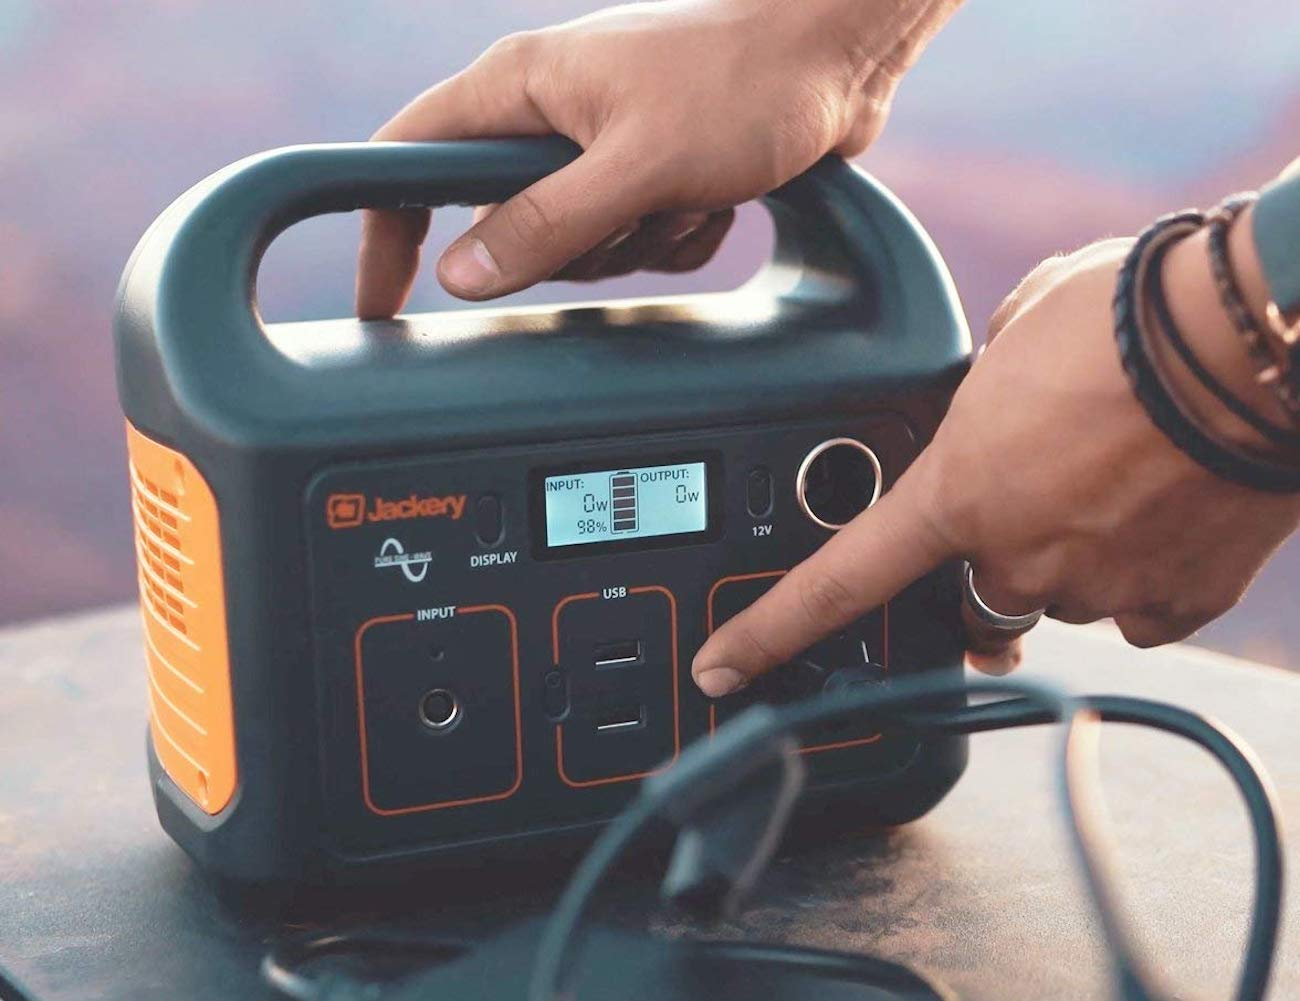 Jackery Explorer 240 Outdoor Portable Power Station